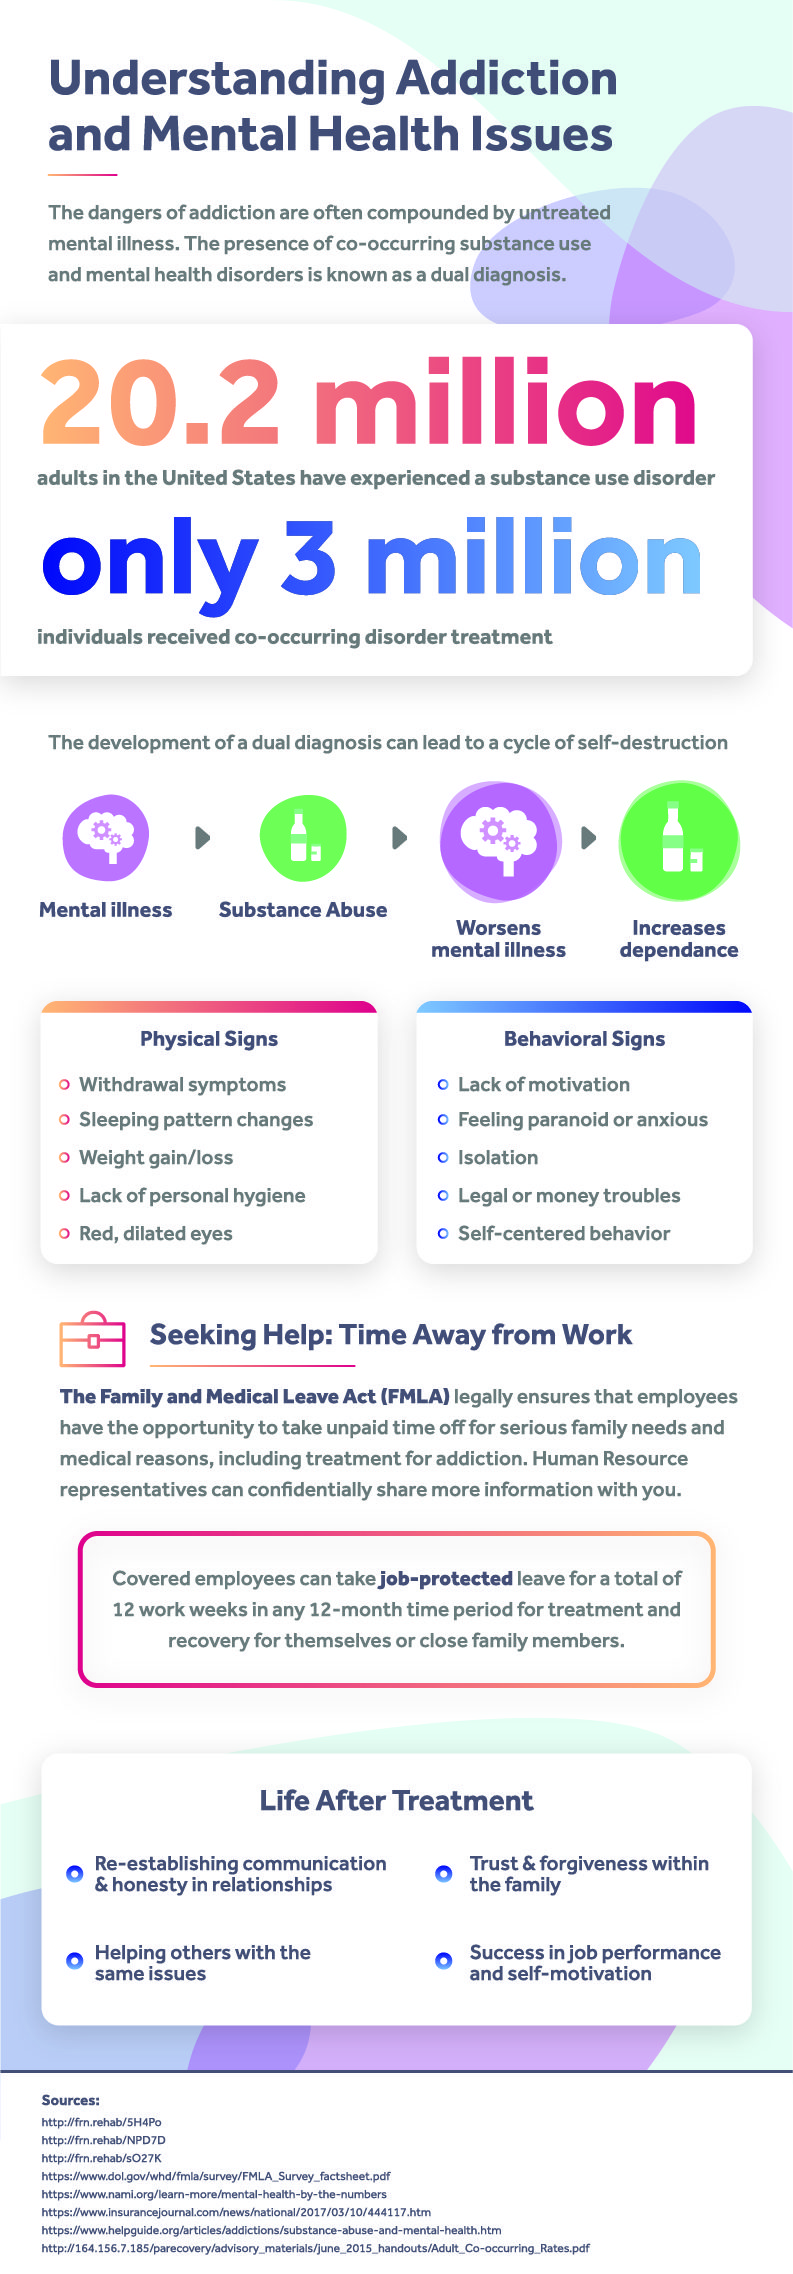 Understanding Addiction in the workplace